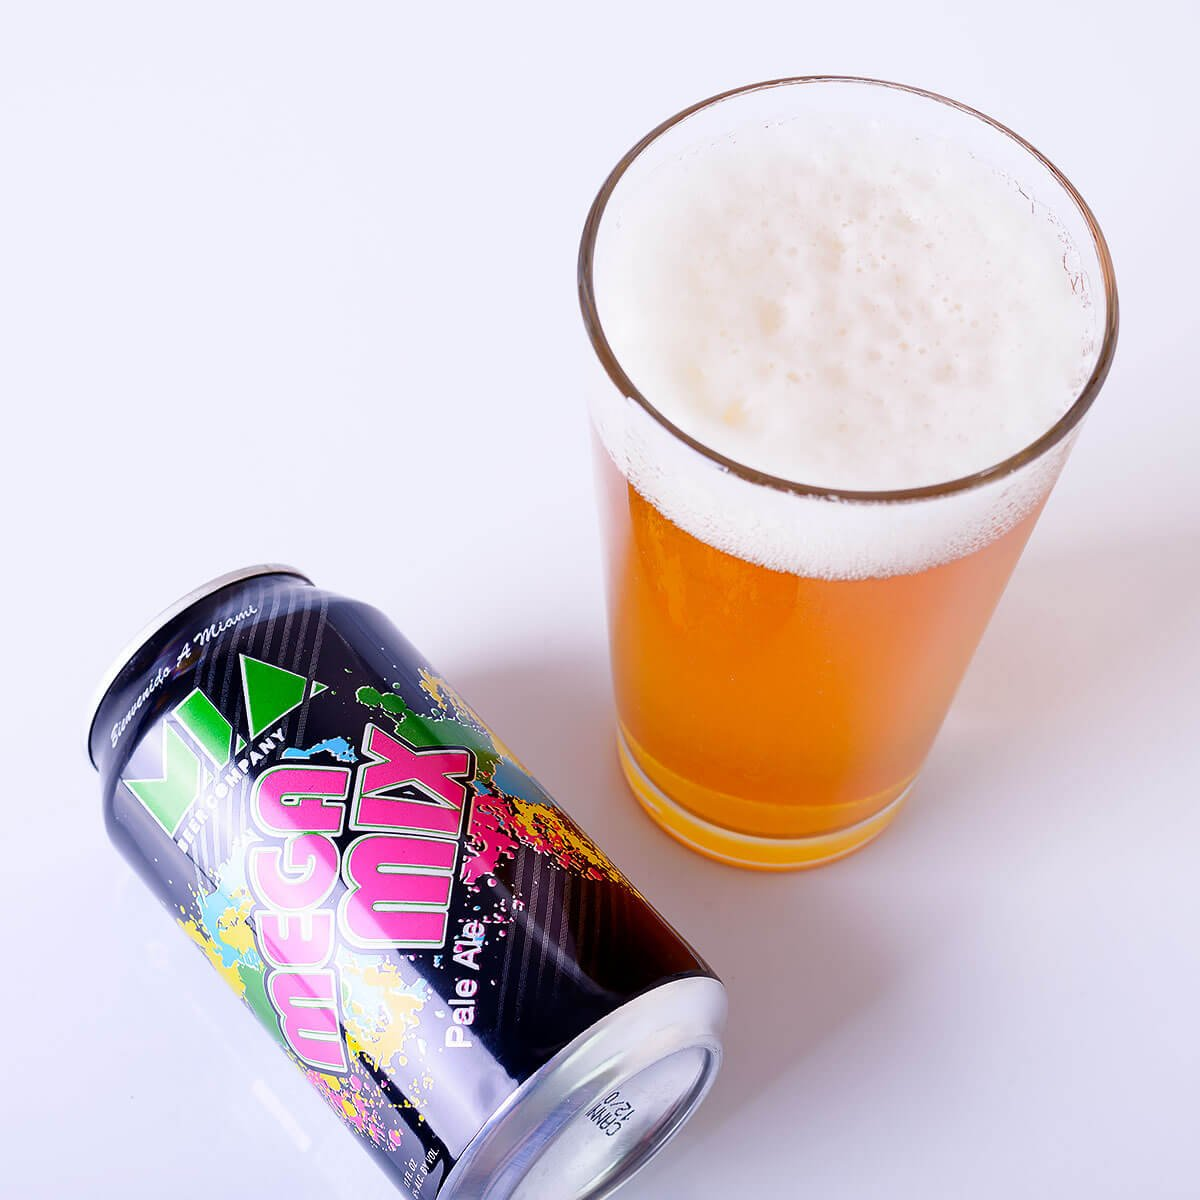 Mega Mix Pale Ale, an American Pale Ale brewed by MIA Beer Co.